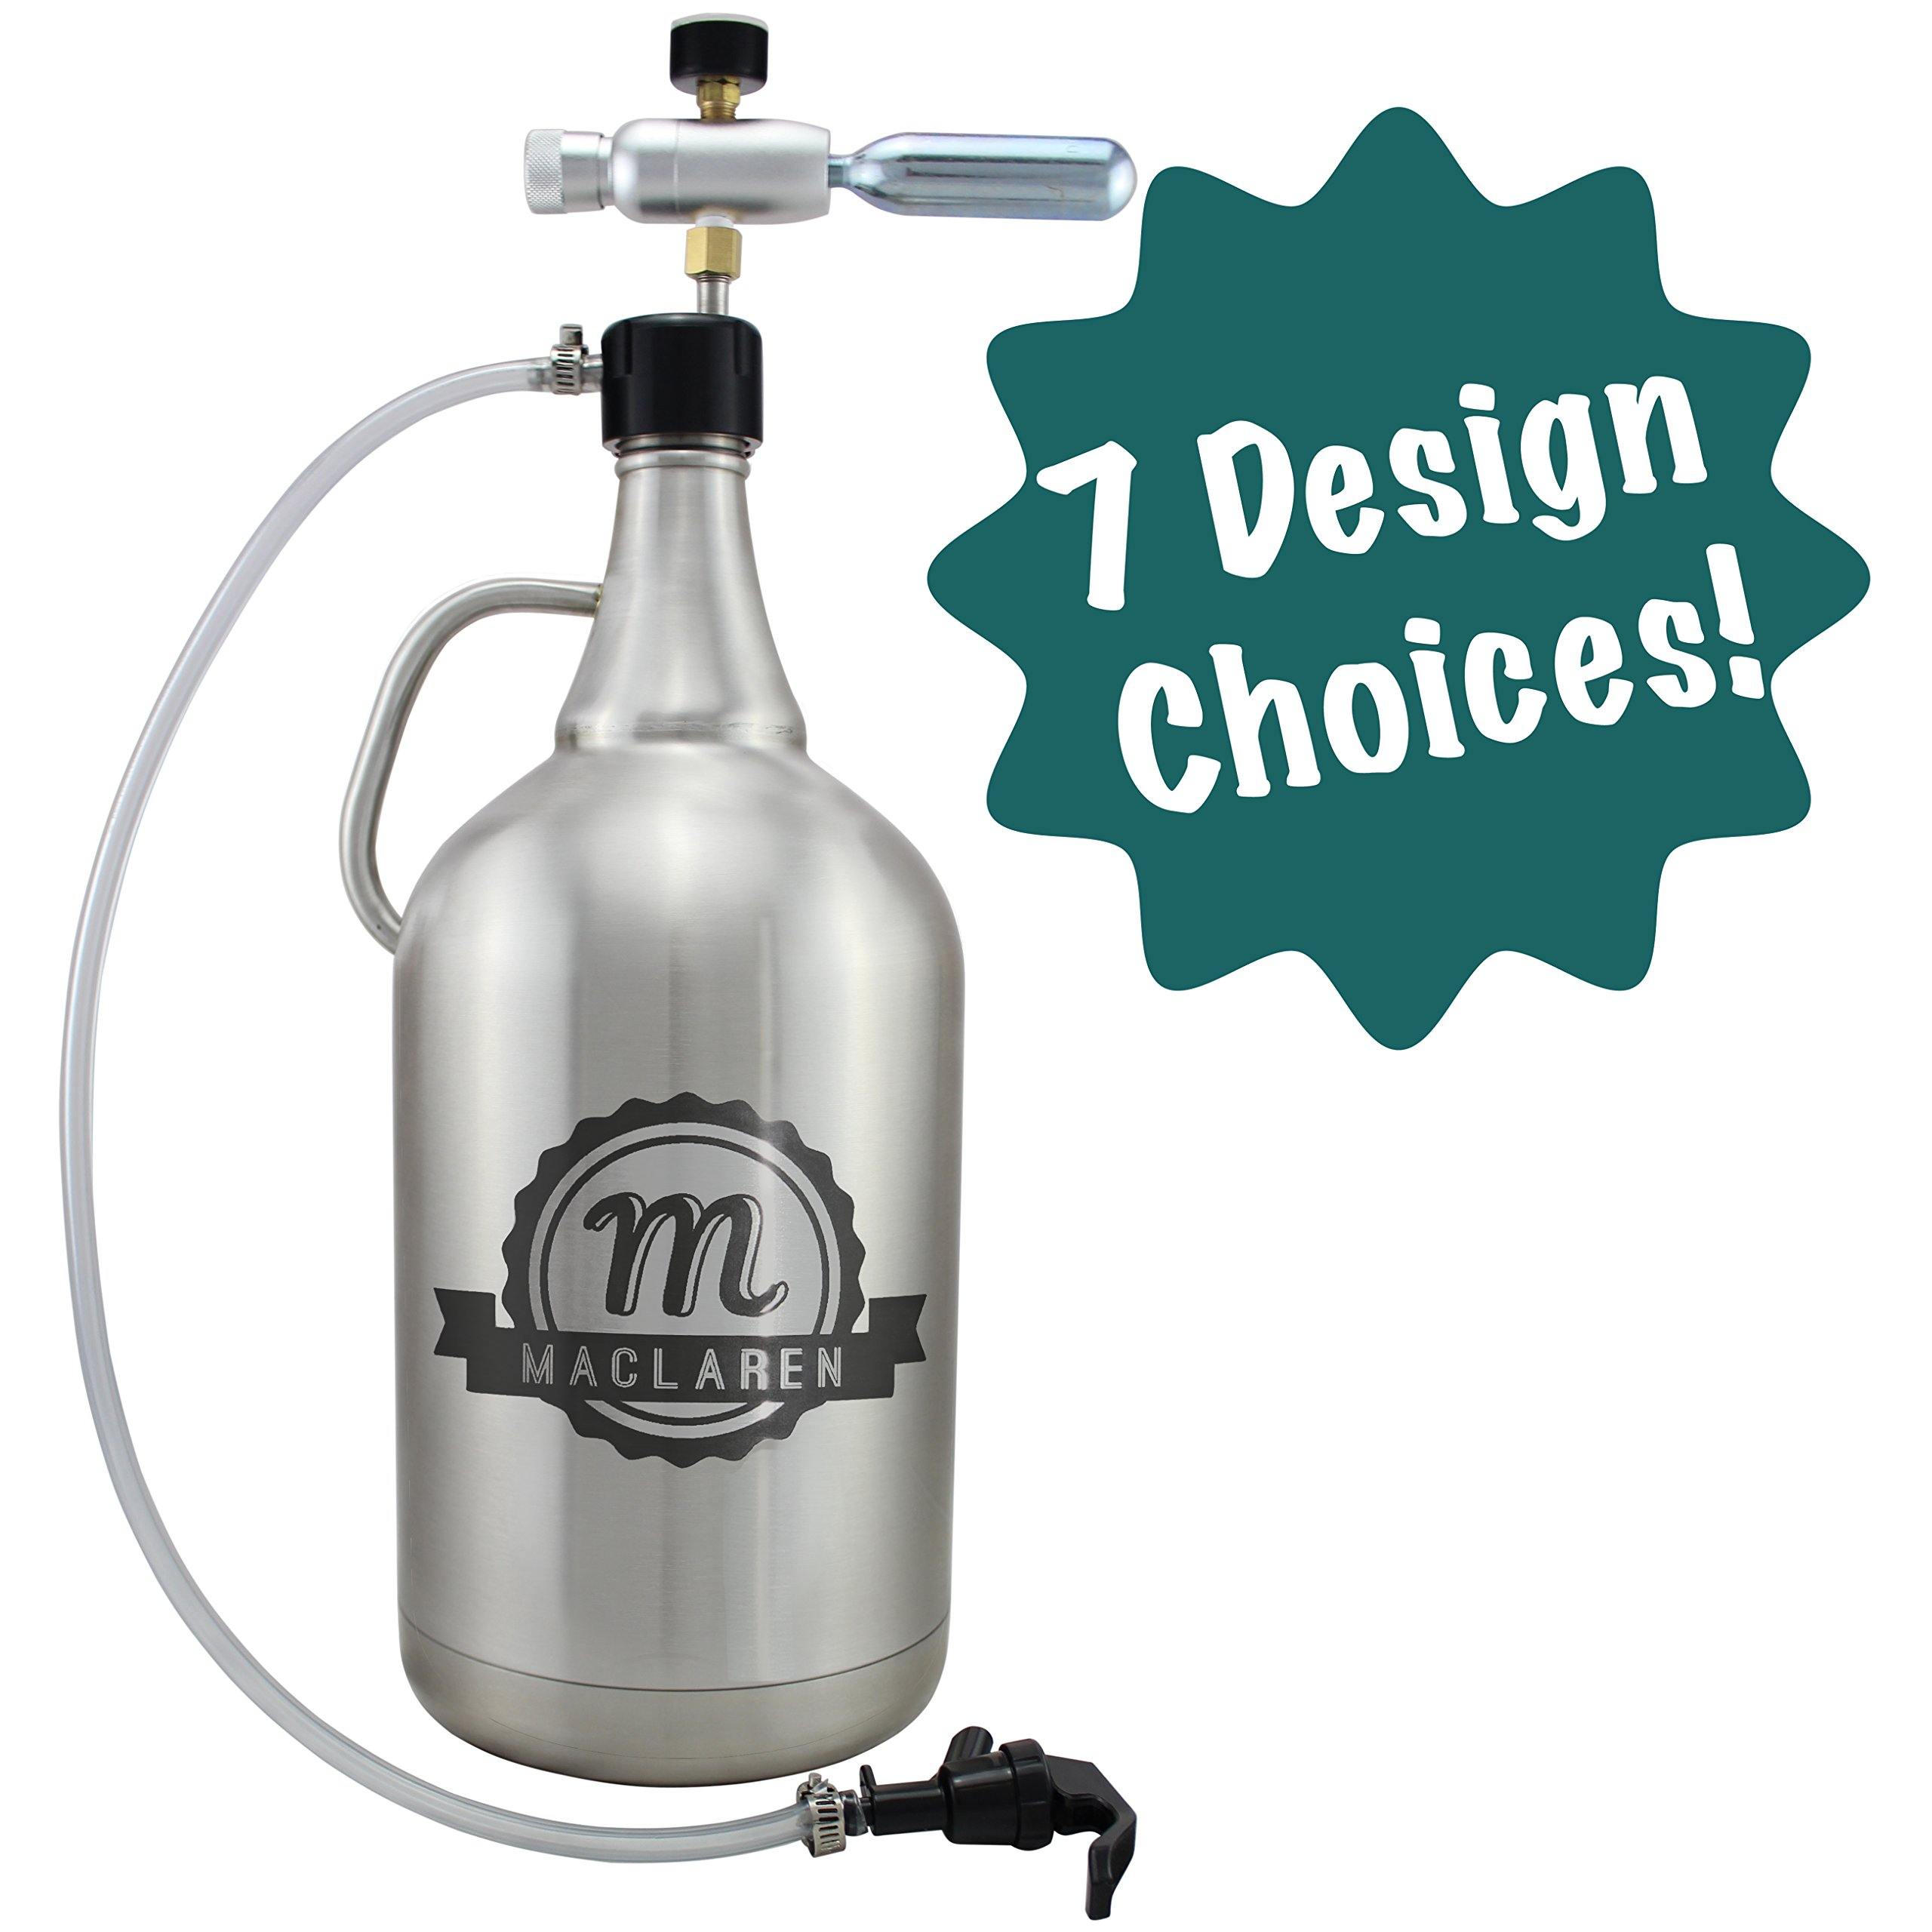 Personalized Etched 128oz Insulated Stainless Steel Growler (With Growler Dispenser) by Spotted Dog Company